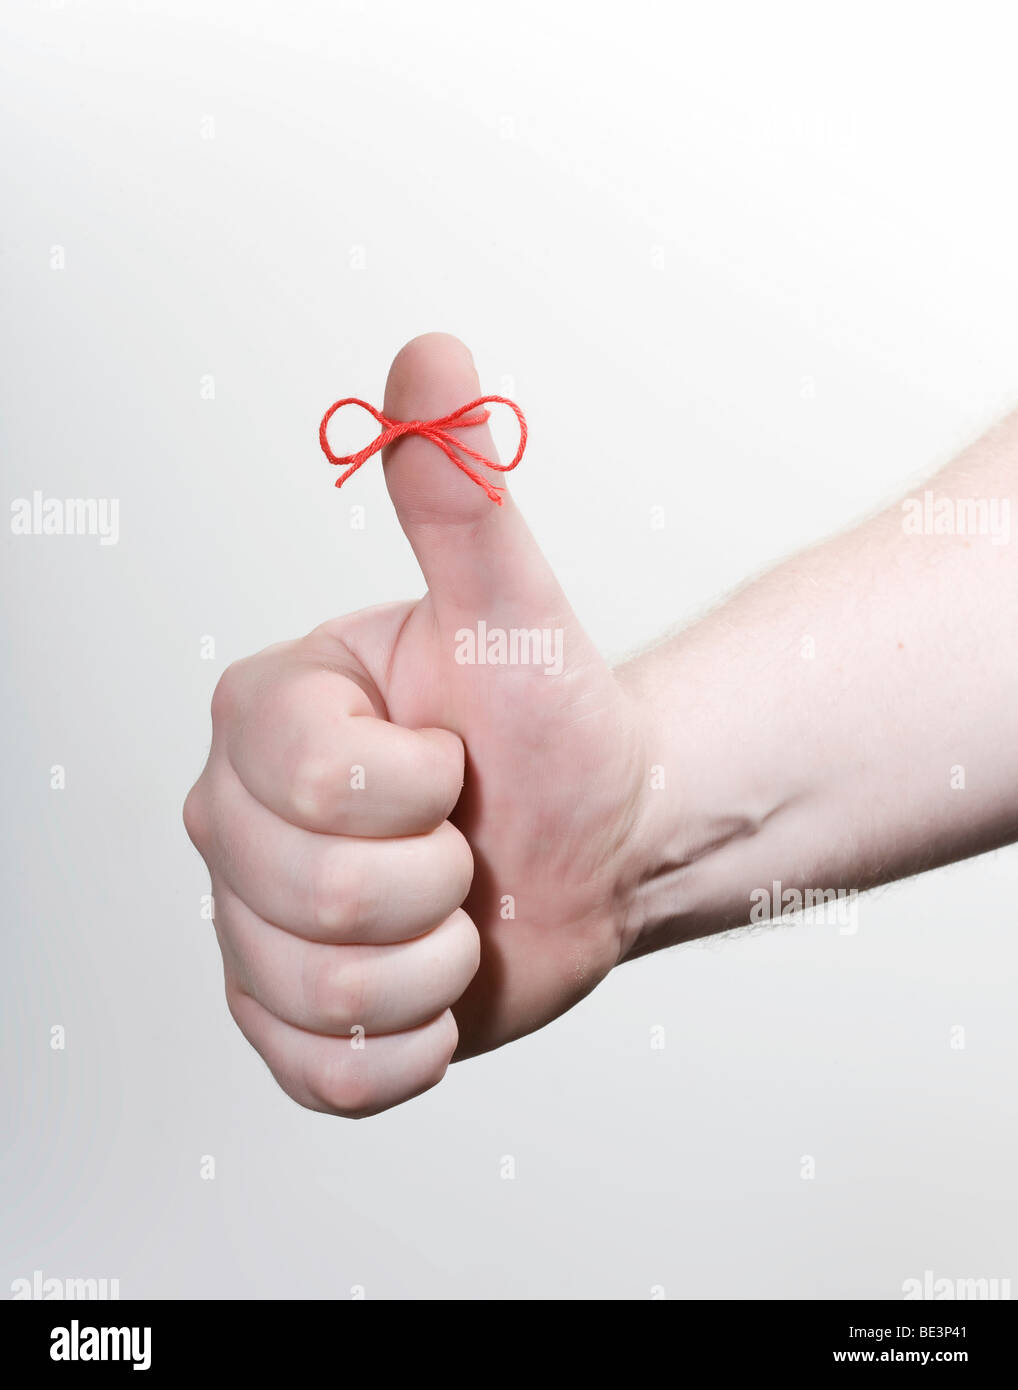 Thumbs up with a red string bow, memory Stock Photo